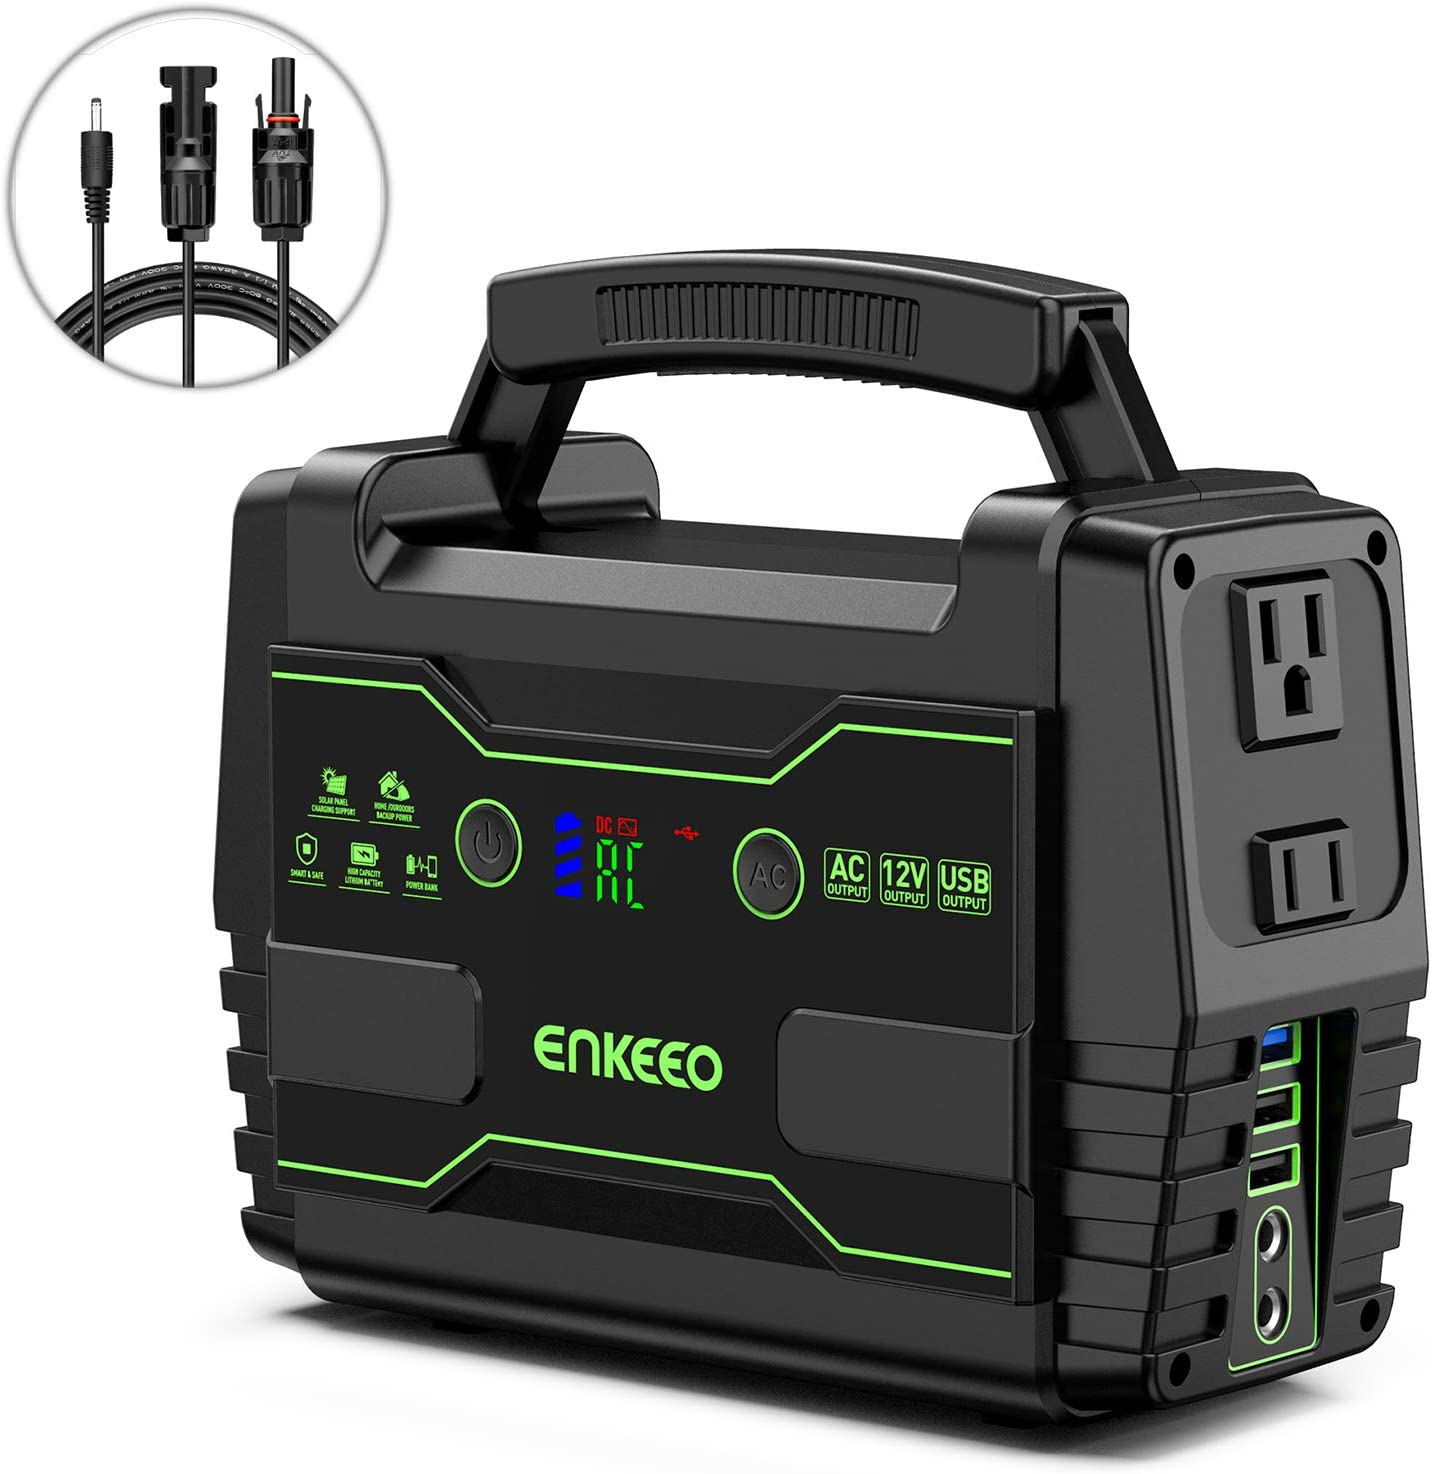 ENKEEO Portable Power Station, 155Wh Lithium Backup Battery Pack 110V 100W Solar Generator Solar Panel Optional with AC Outlet USB DC Supply for Outdoors Camping Travel Fishing Hunting Emergency